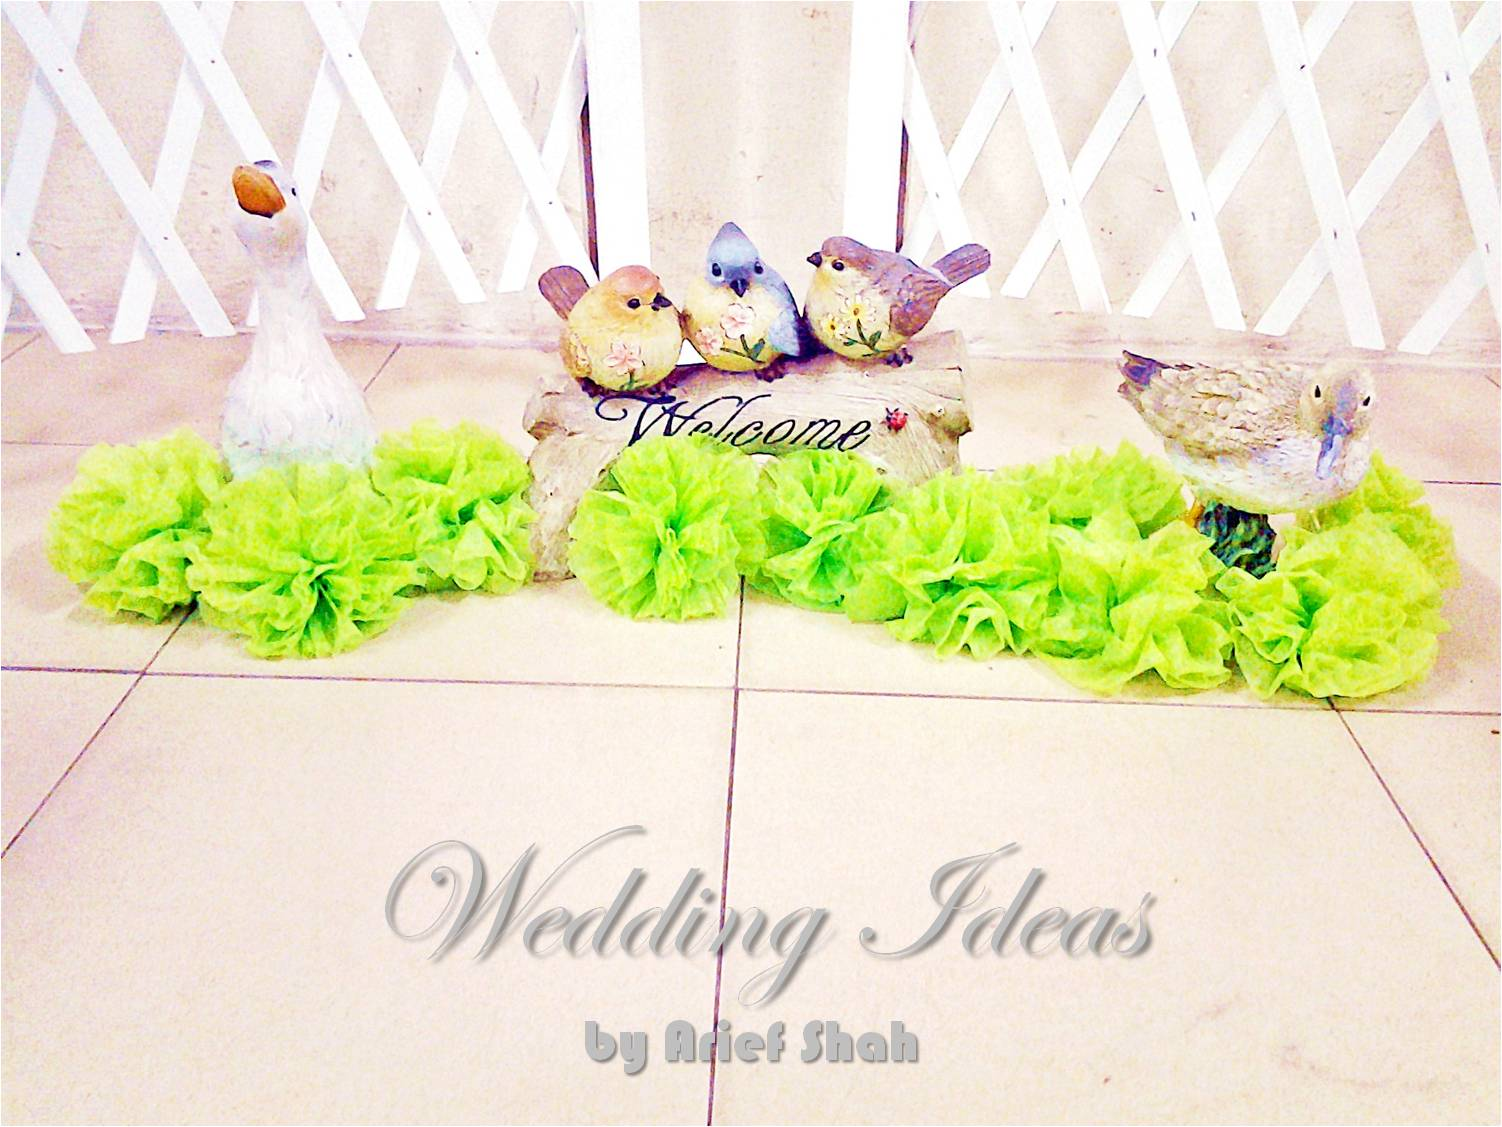 wedding ideas by arief shah wedding ideas s day decoration by wedding ideas 28074